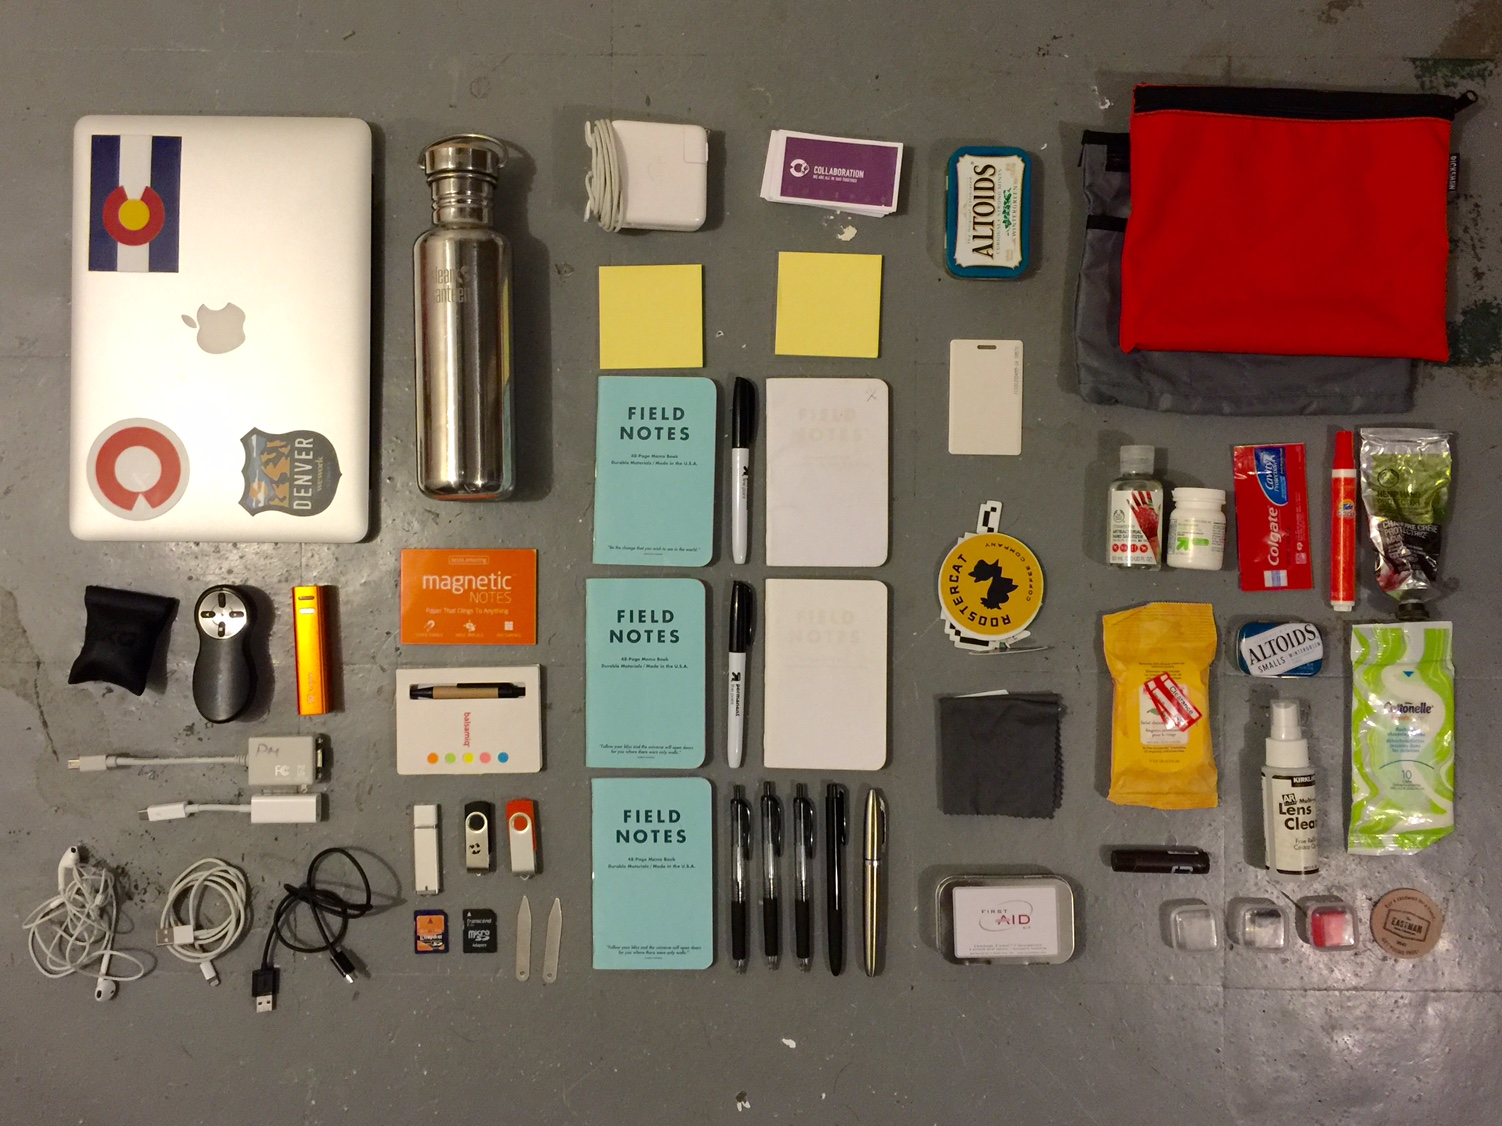 Contents. Not enough Field Notes, natch.